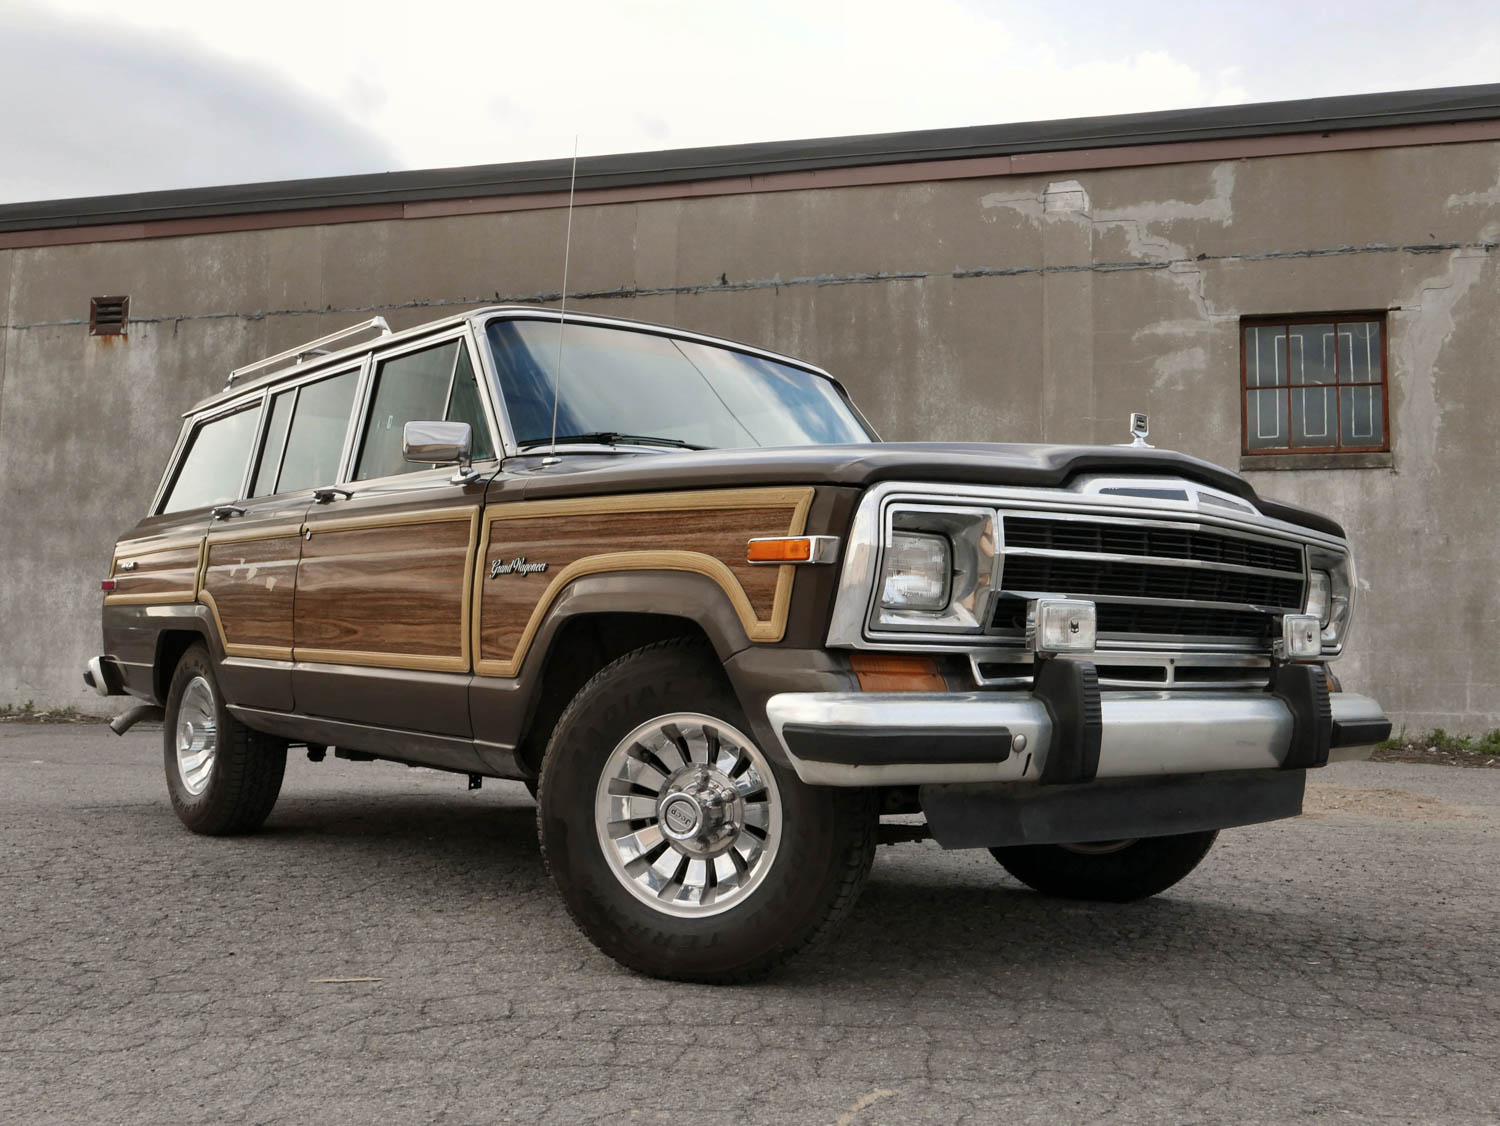 1987 Jeep Grand Wagoneer front 3/4